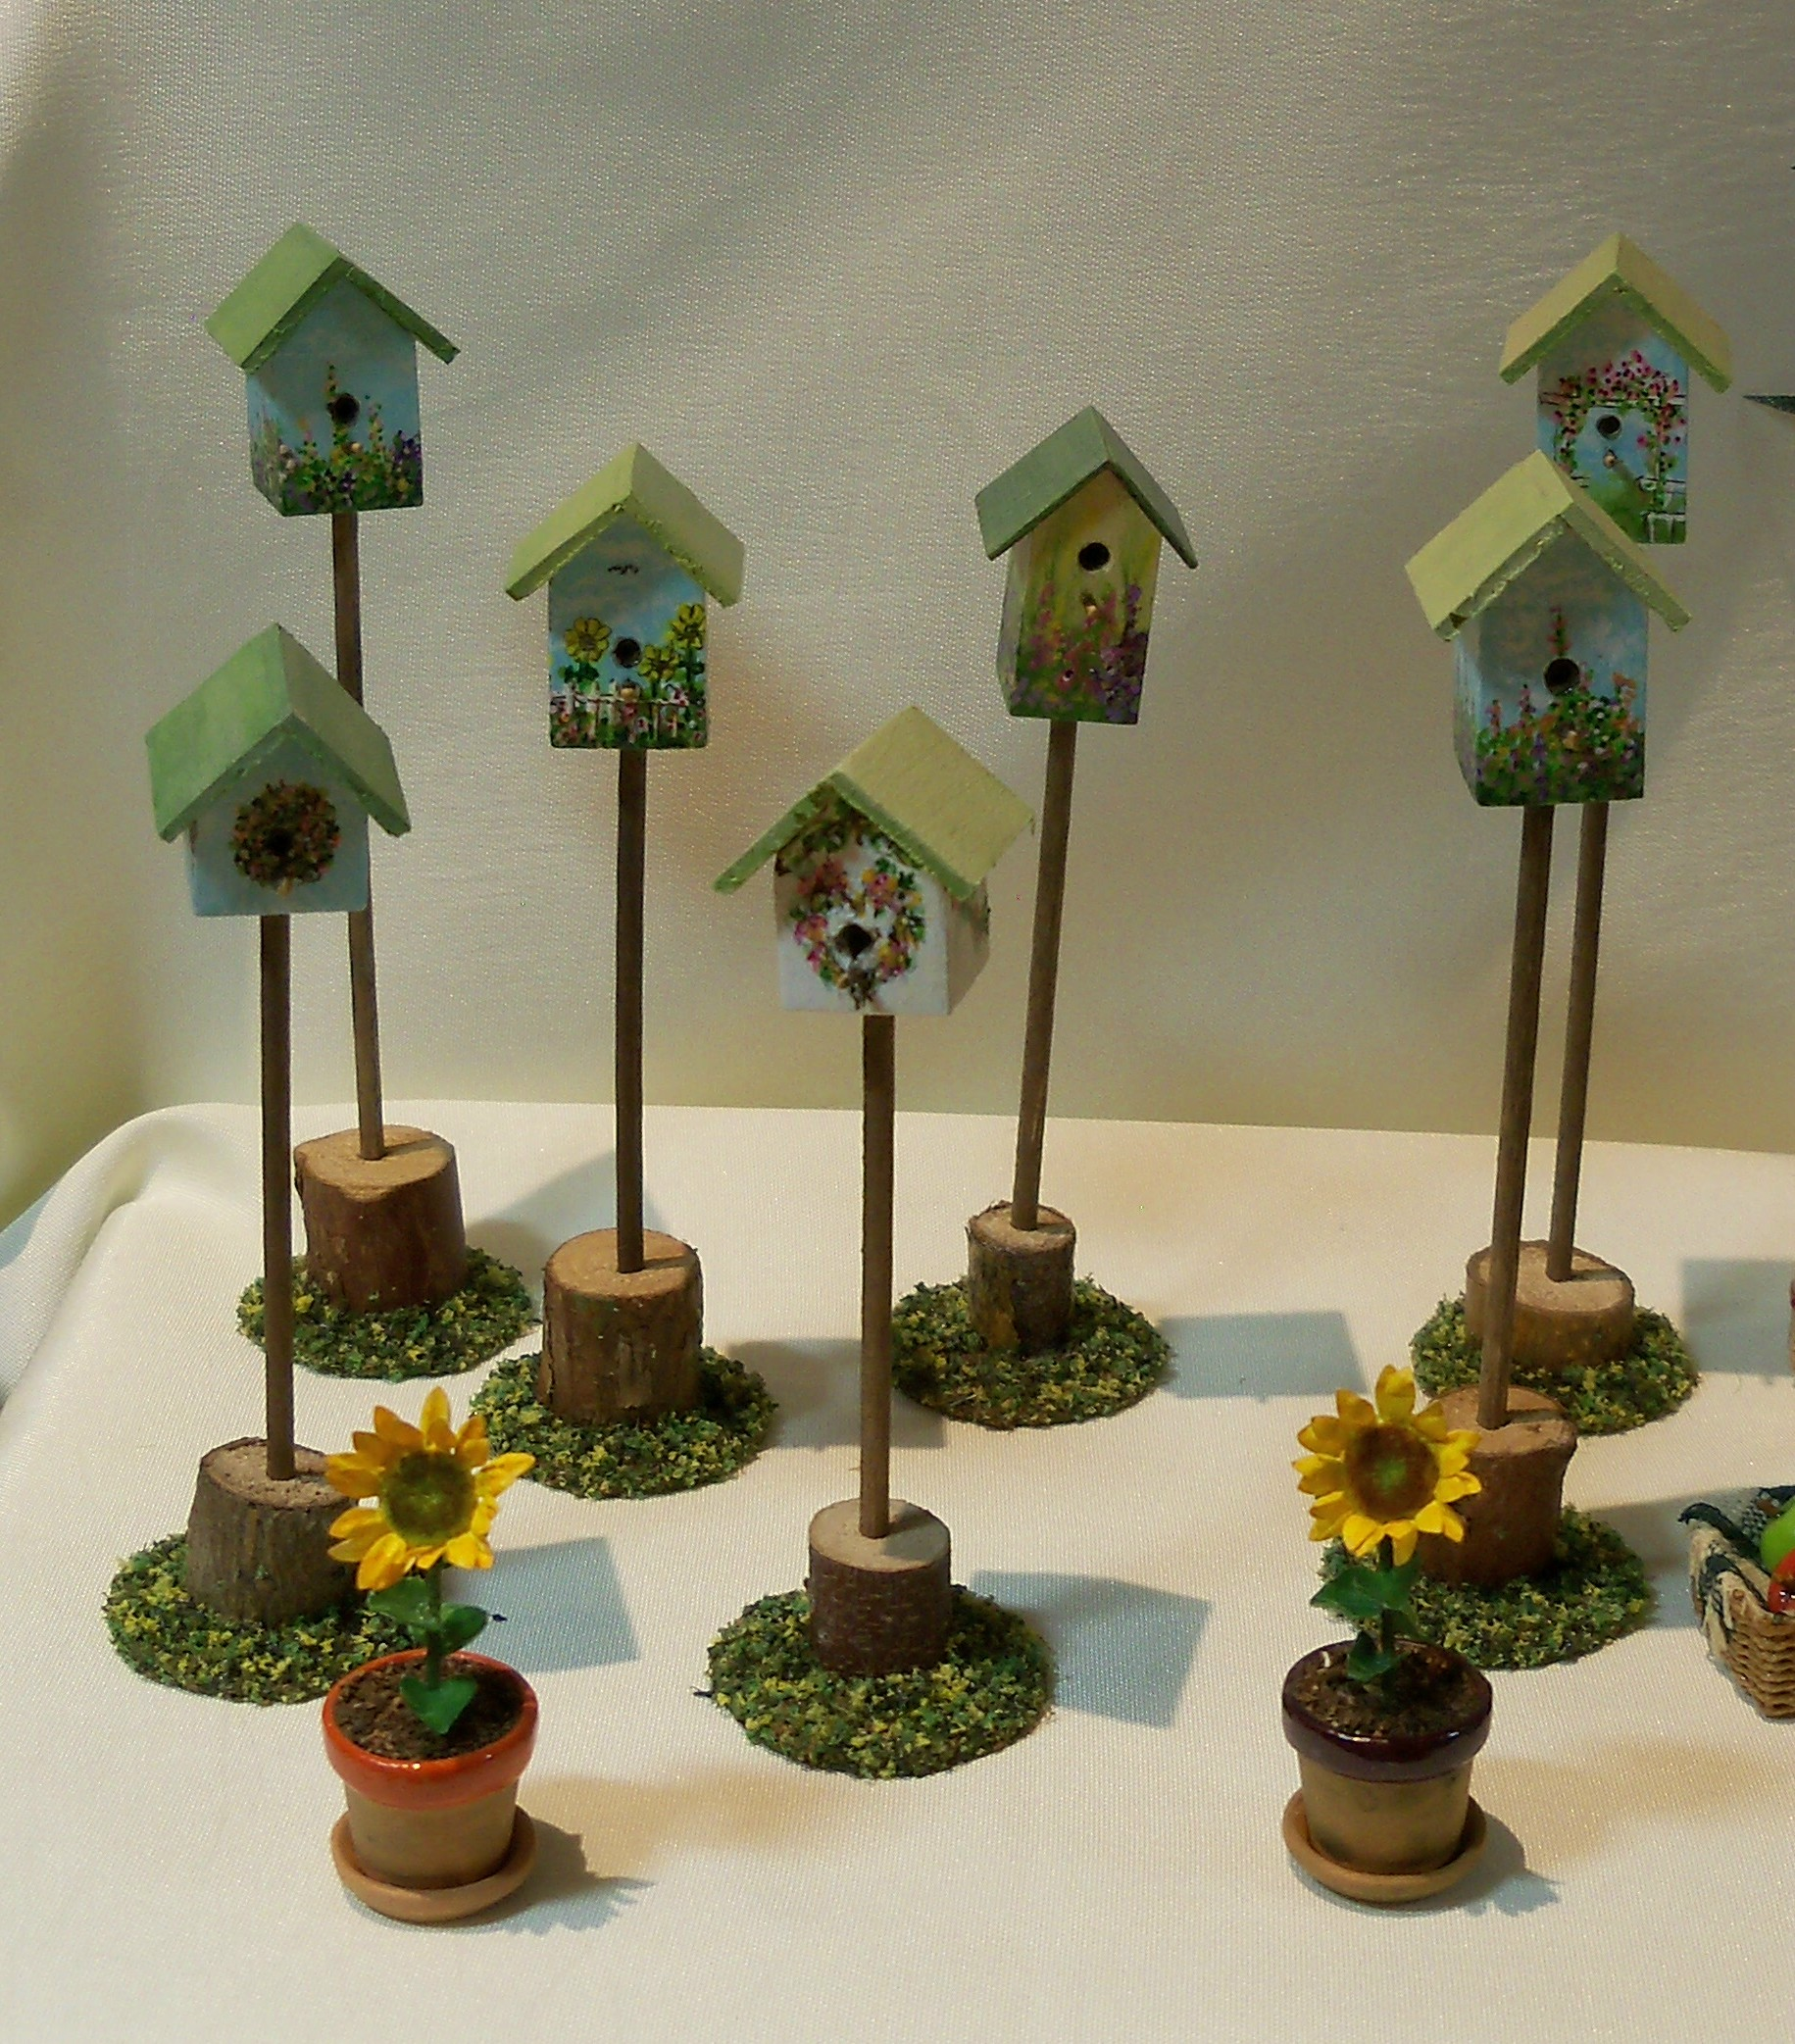 Bird houses on stands